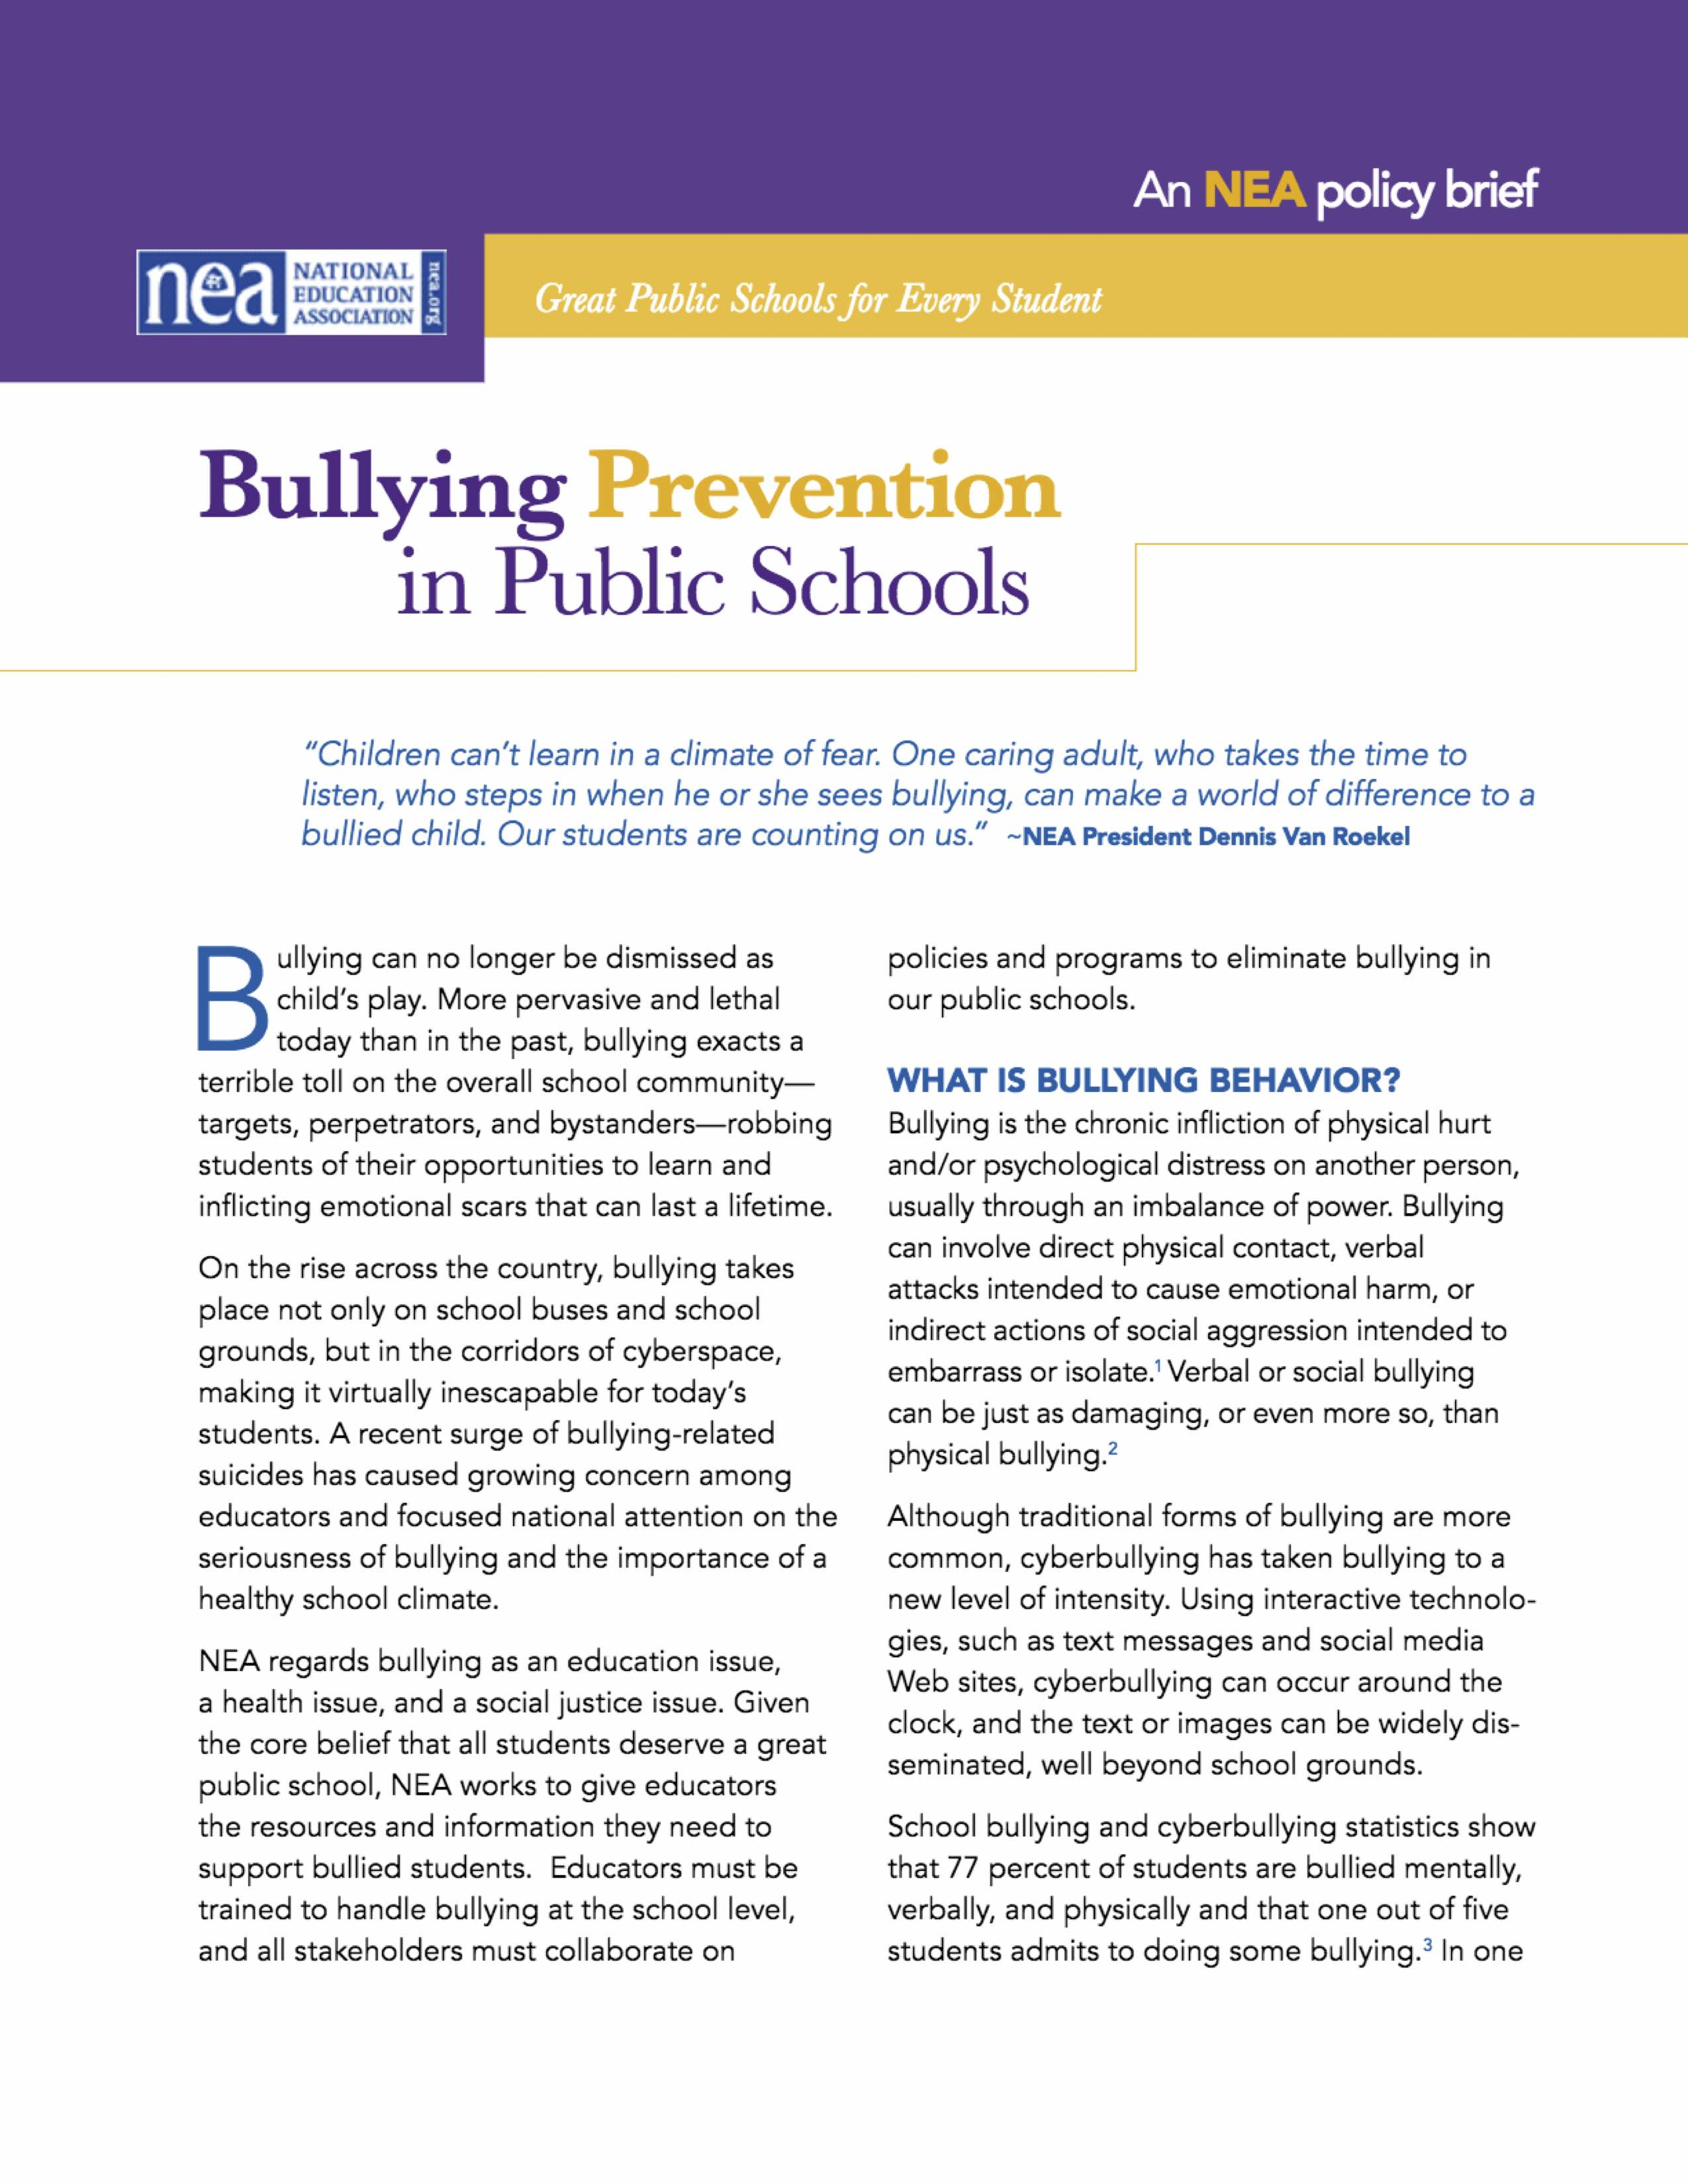 2012 Bullying-PreventioninPublicSchools-PolicyBrief